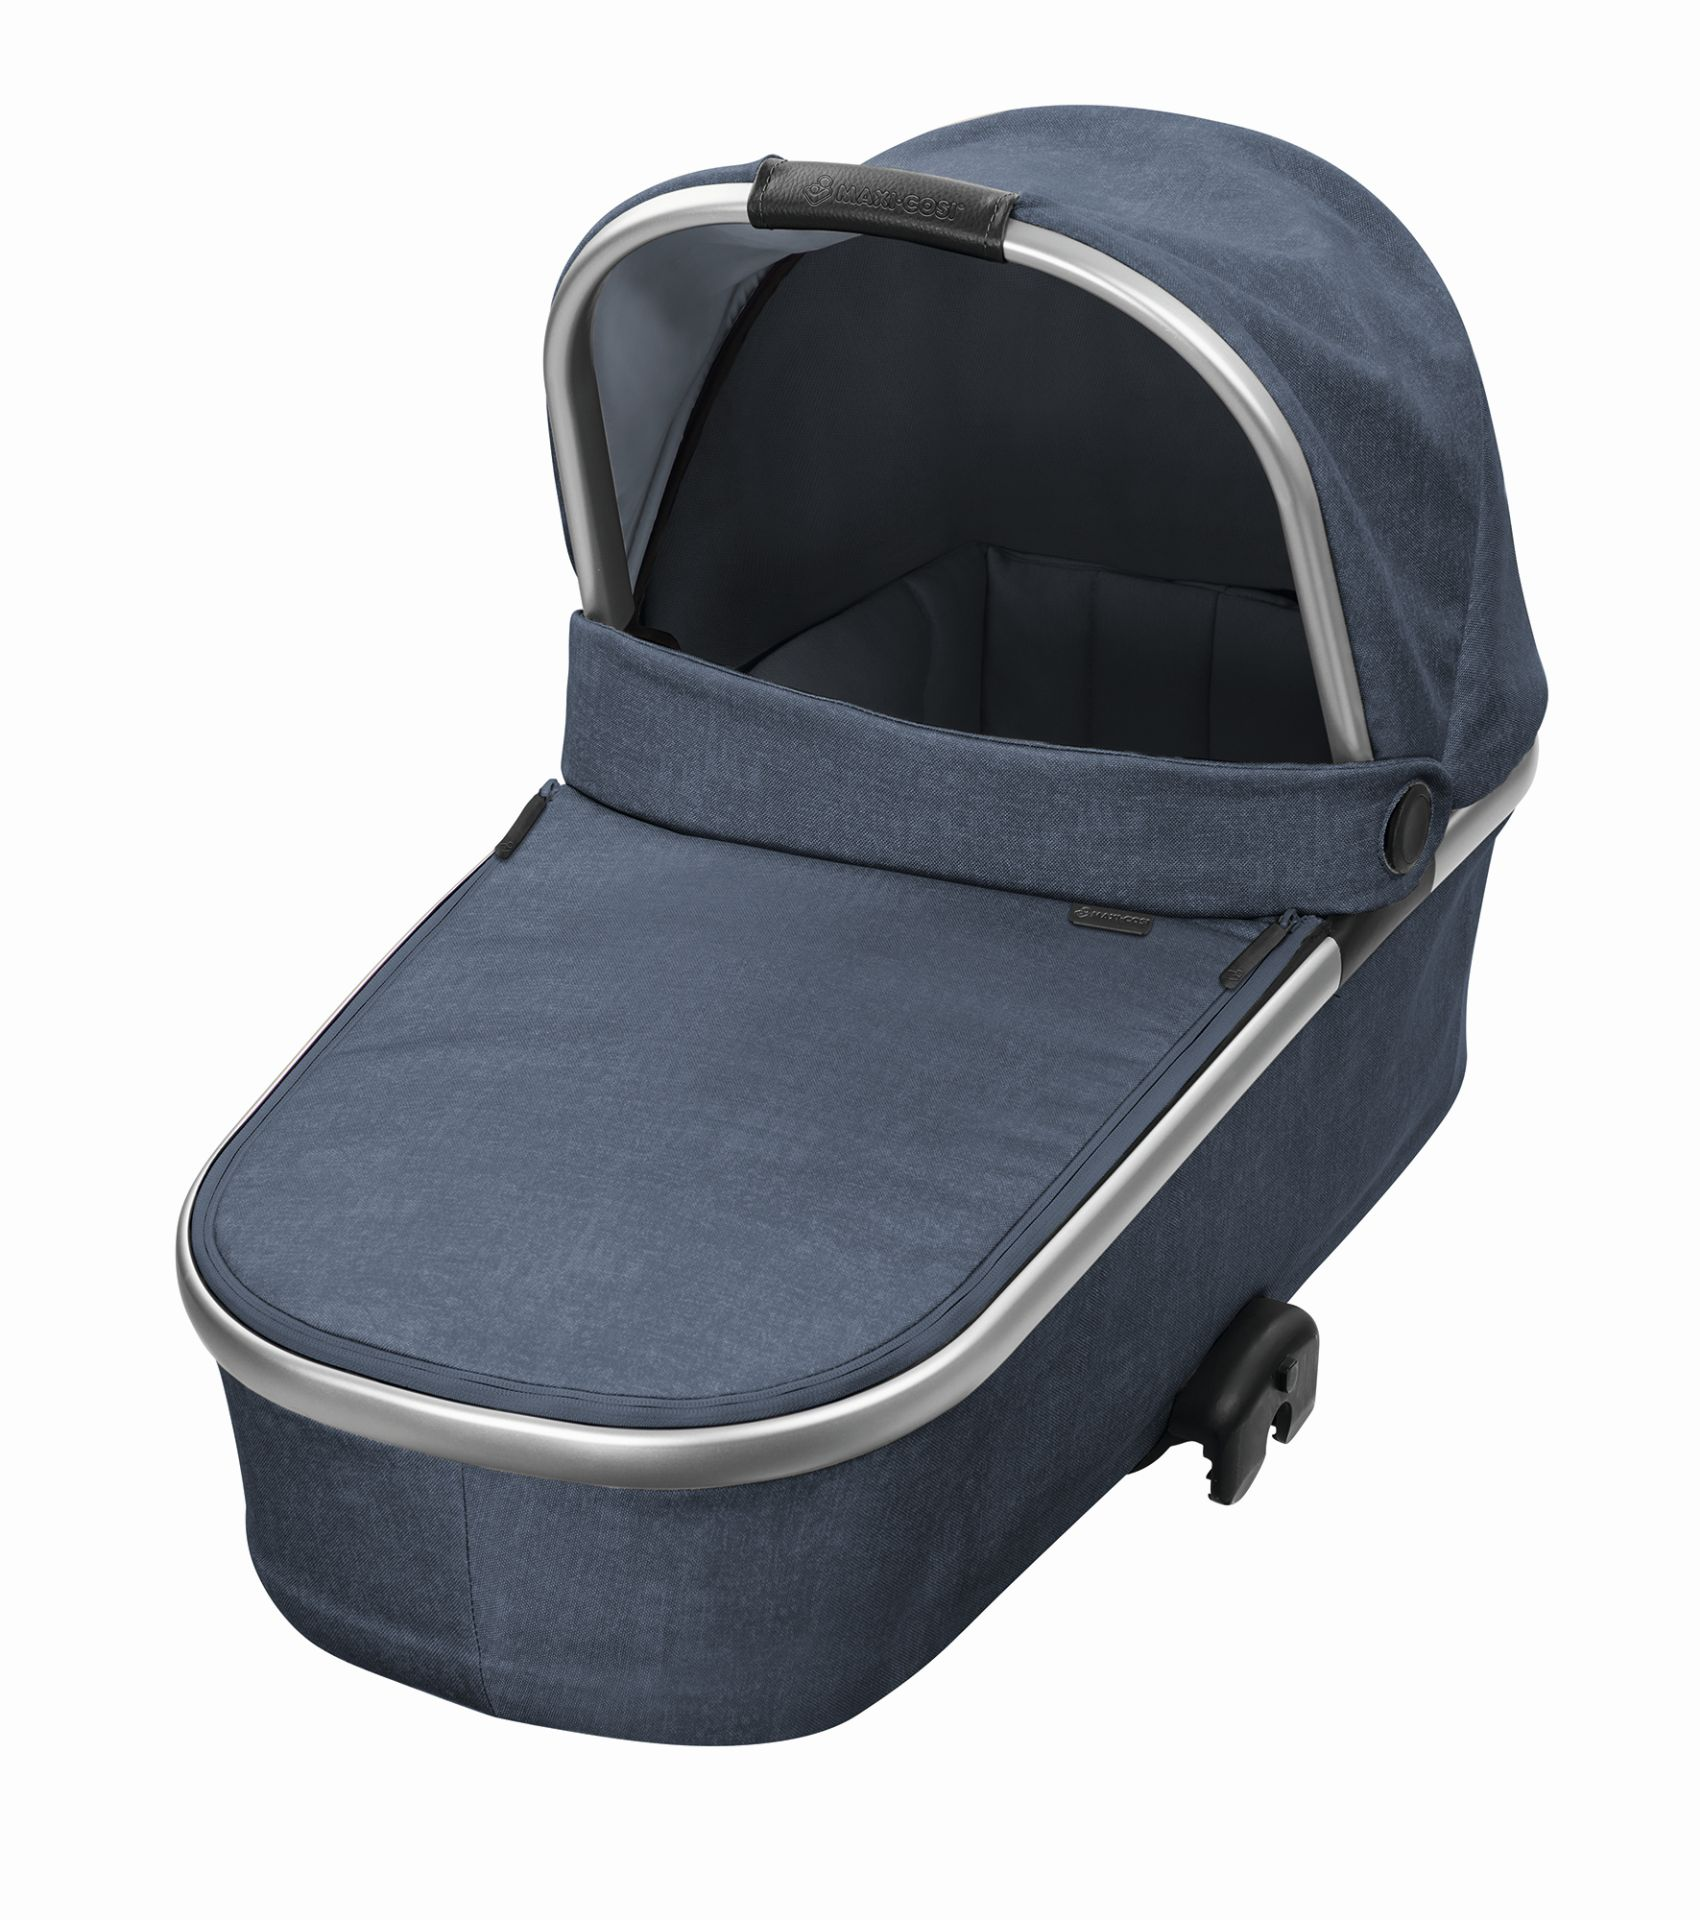 Maxi cosi carrycot oria buy at kidsroom strollers for Maxi cosi housse